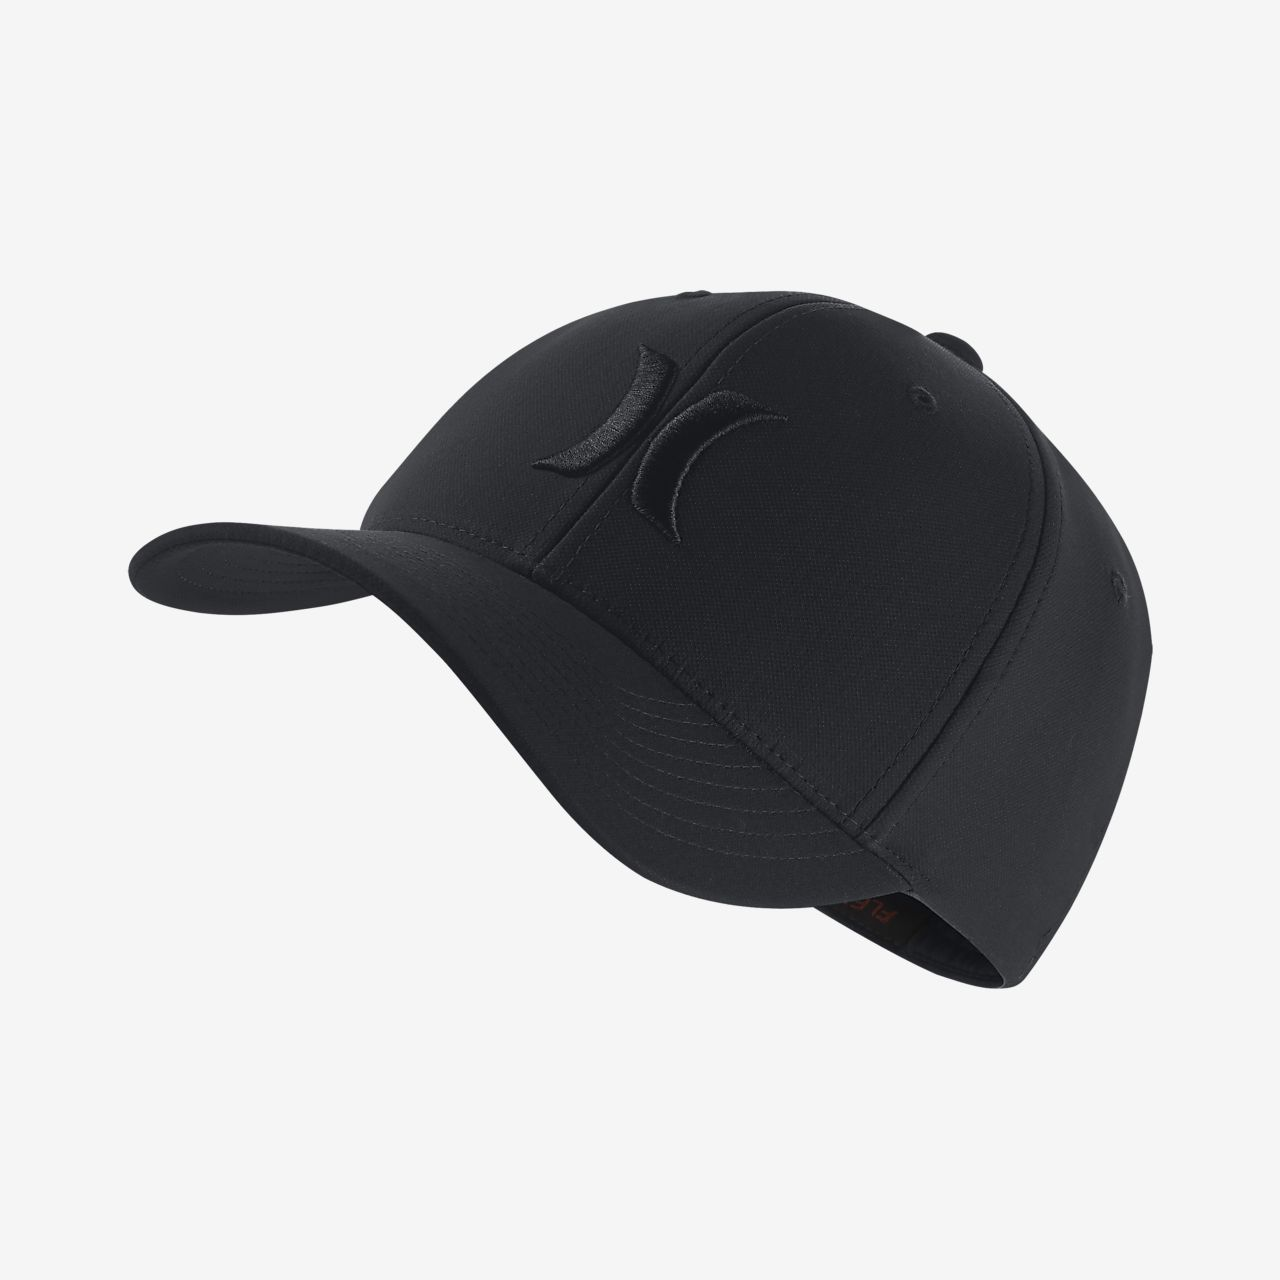 205e5101749 Hurley One And Only Dri-FIT Unisex Fitted Hat. Nike.com NO